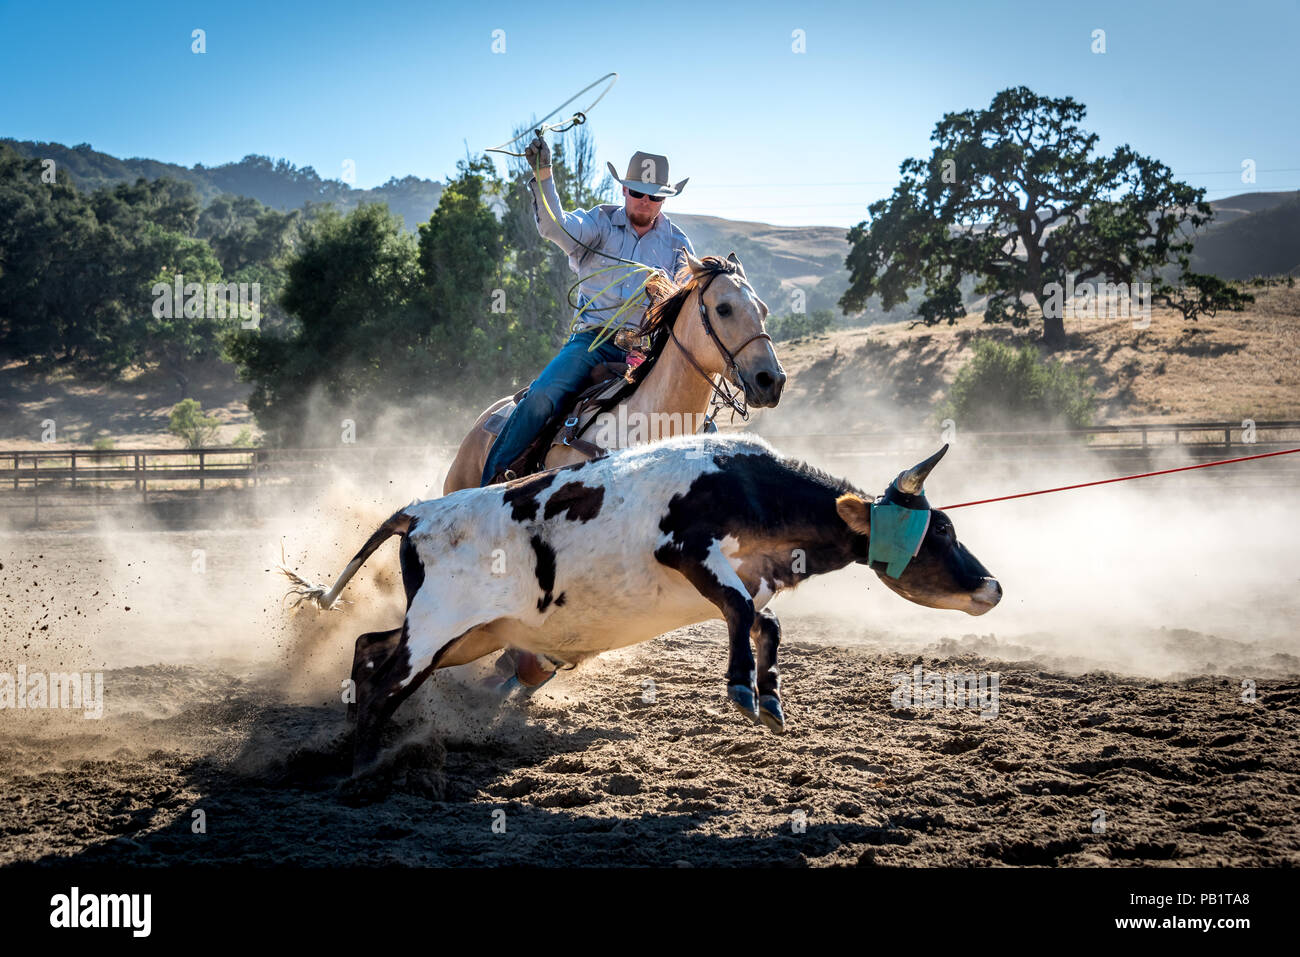 Cowboy roping young steer on horseback in Central California, sun shining through dust, oak tree in background. Lasso in air with one rope around calf - Stock Image